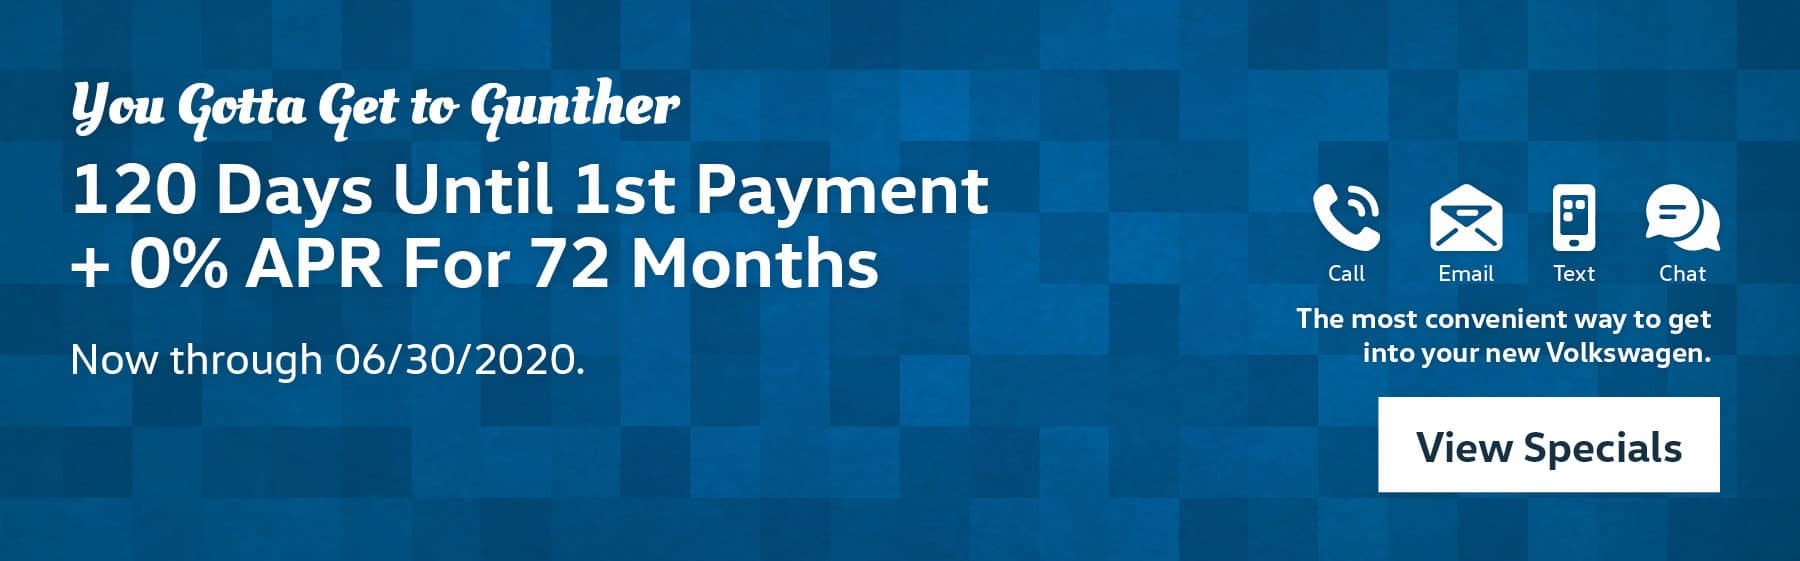 You gotta get to Gunther. 120 Days until 1st payment +0% APR for 72 months, now through 06/30/2020. Call, email, text, and chat, the most convenient way to get into your new Volkswagen. View Specials.